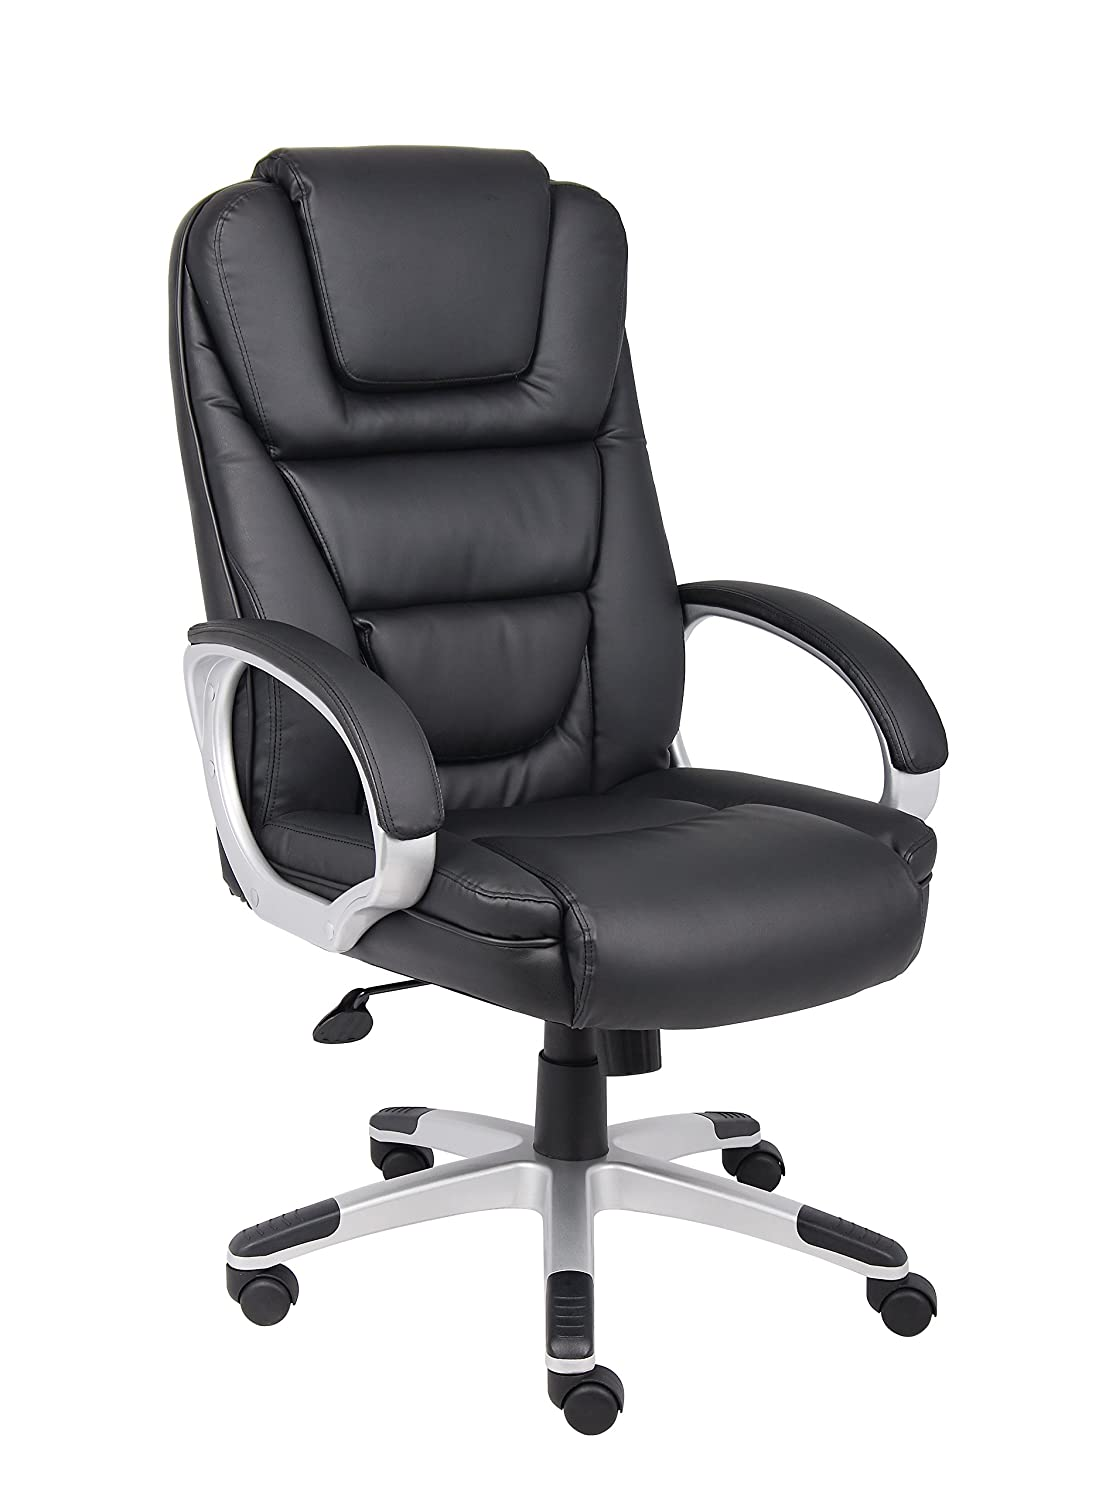 Best Desk Chair For Lower Back Pain Best Office Chairs For Lower Back Pain Detailed Review